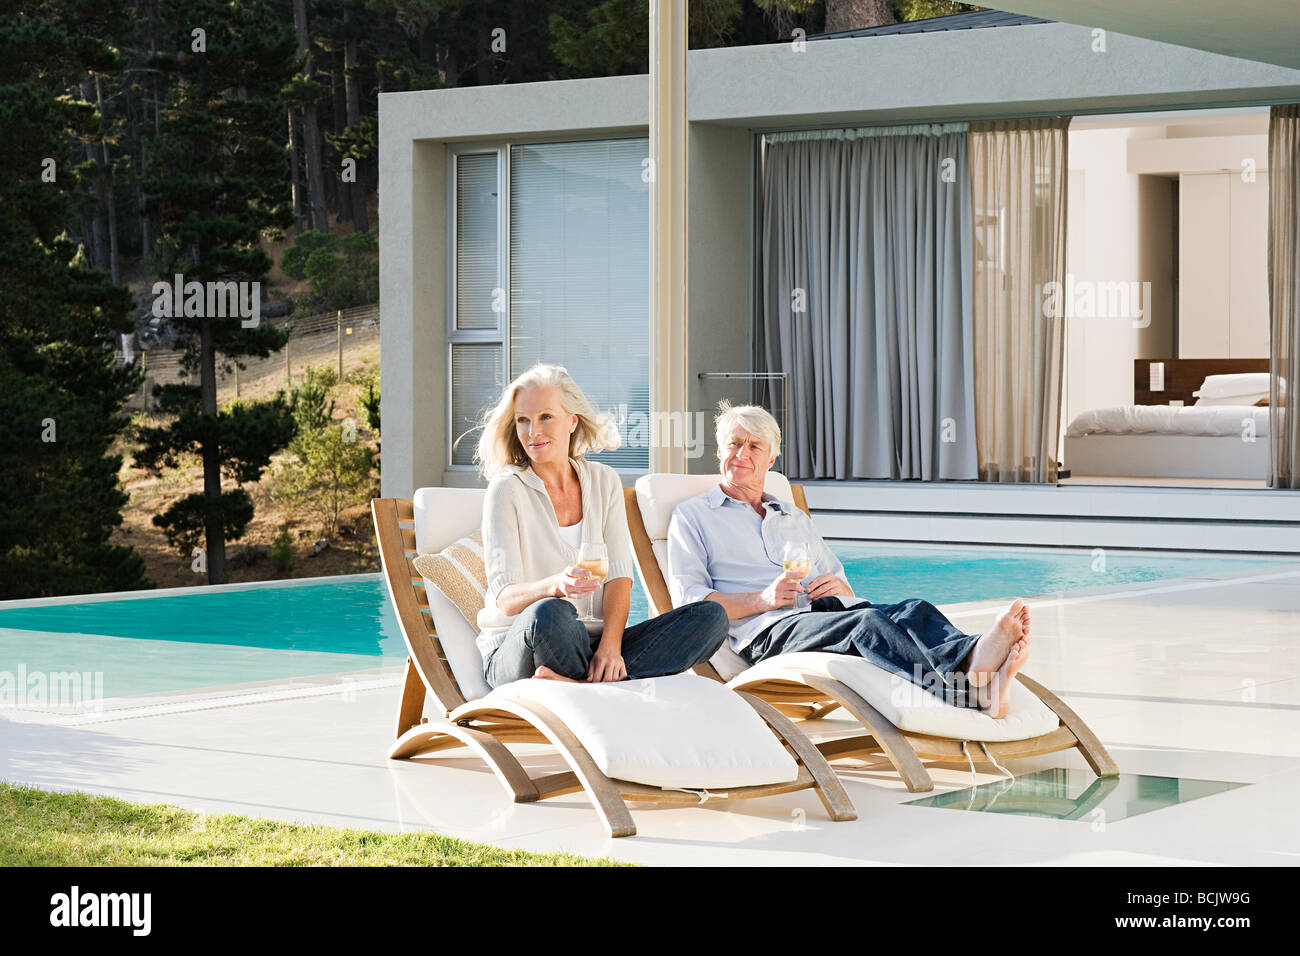 Middle aged couple relaxing on deck chairs by the pool Stock Photo